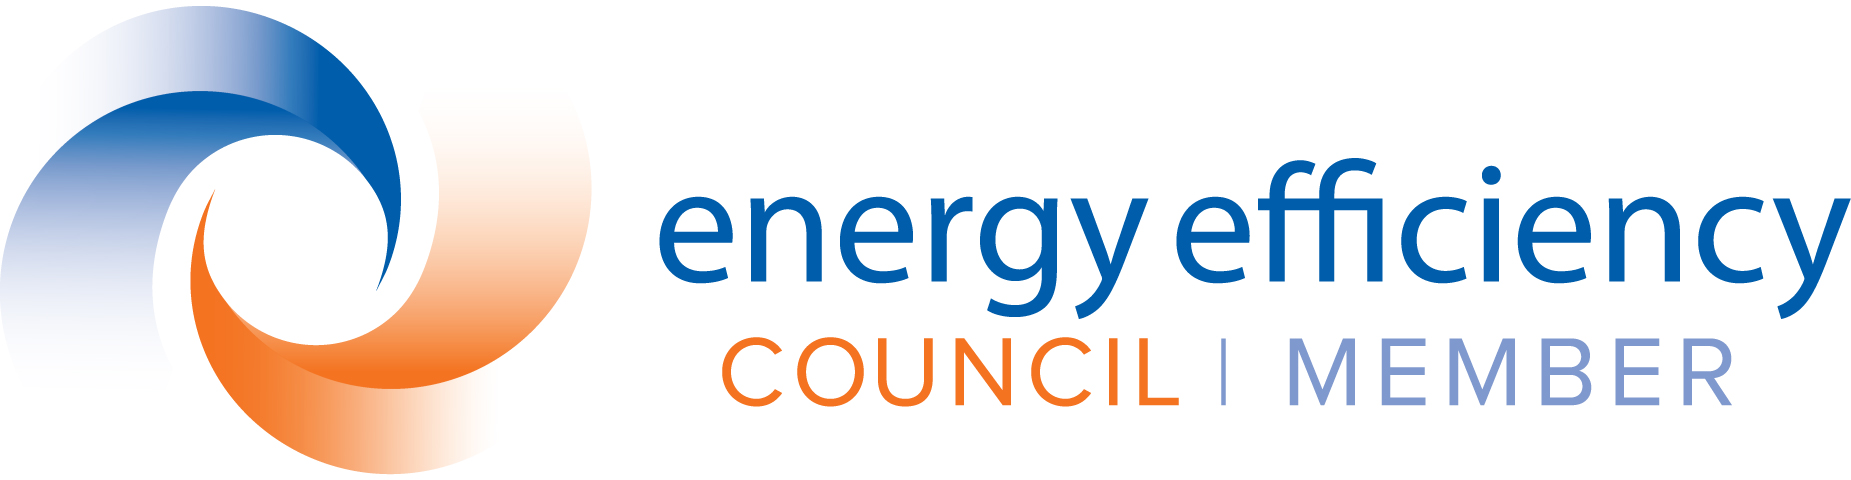 Maser now an Associate Member of the Energy Efficiency Council